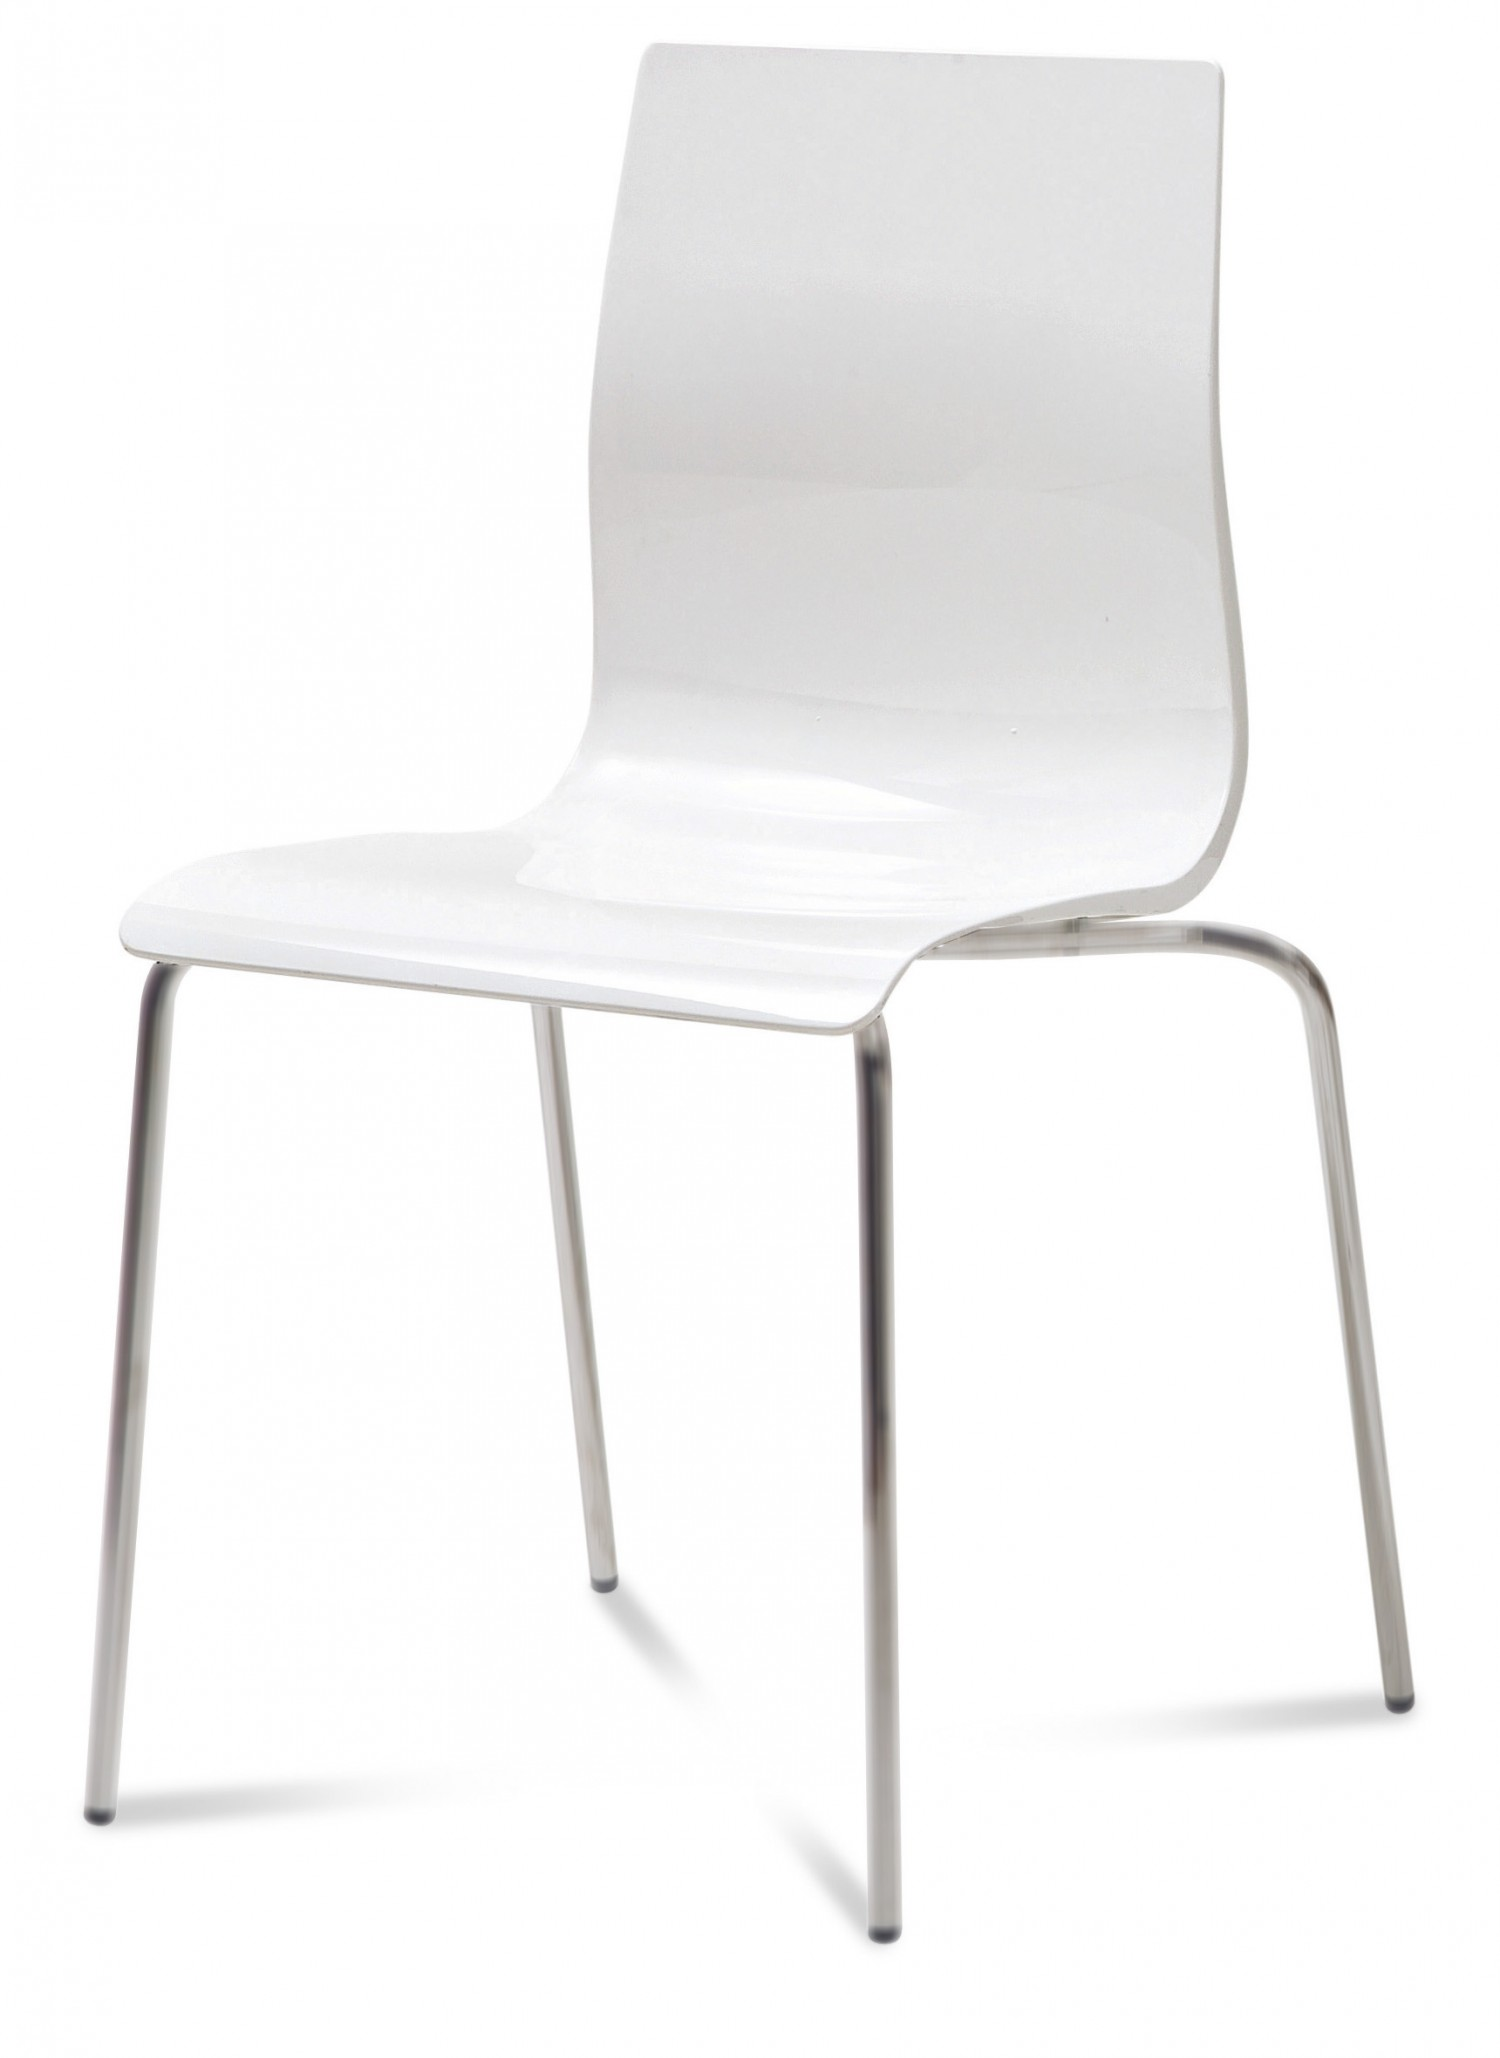 White Stackable Chairs Domitalia Gel B Stacking Chair In White